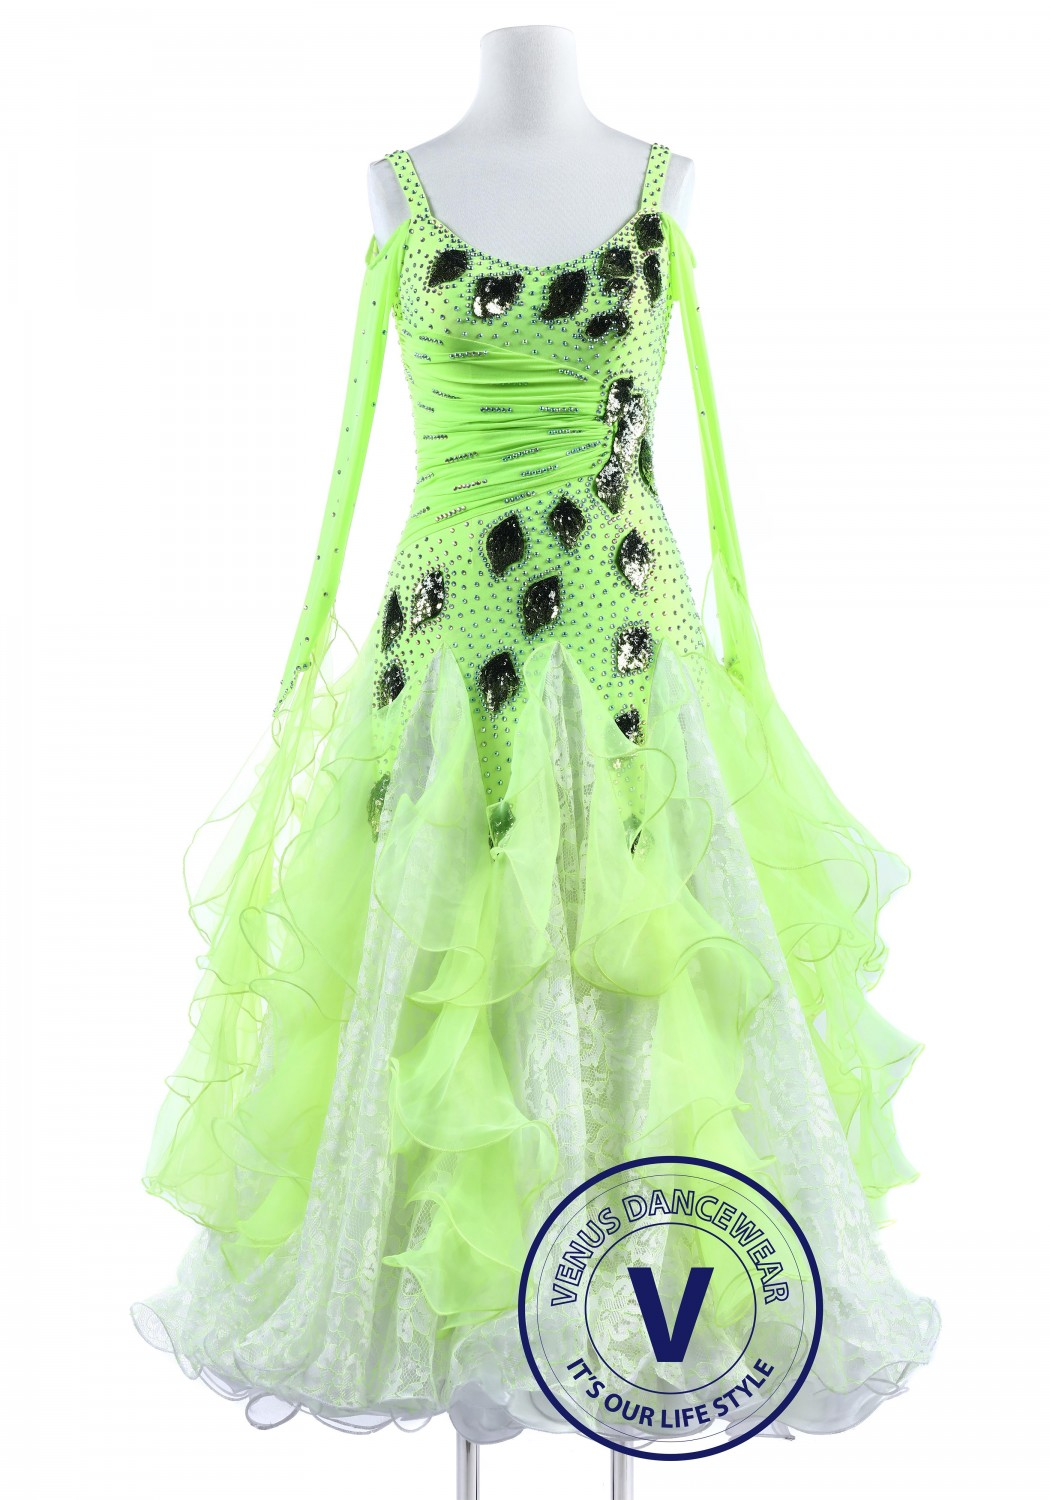 Green Leaf and Lace Standard Smooth Foxtrot Waltz Quickstep Dress